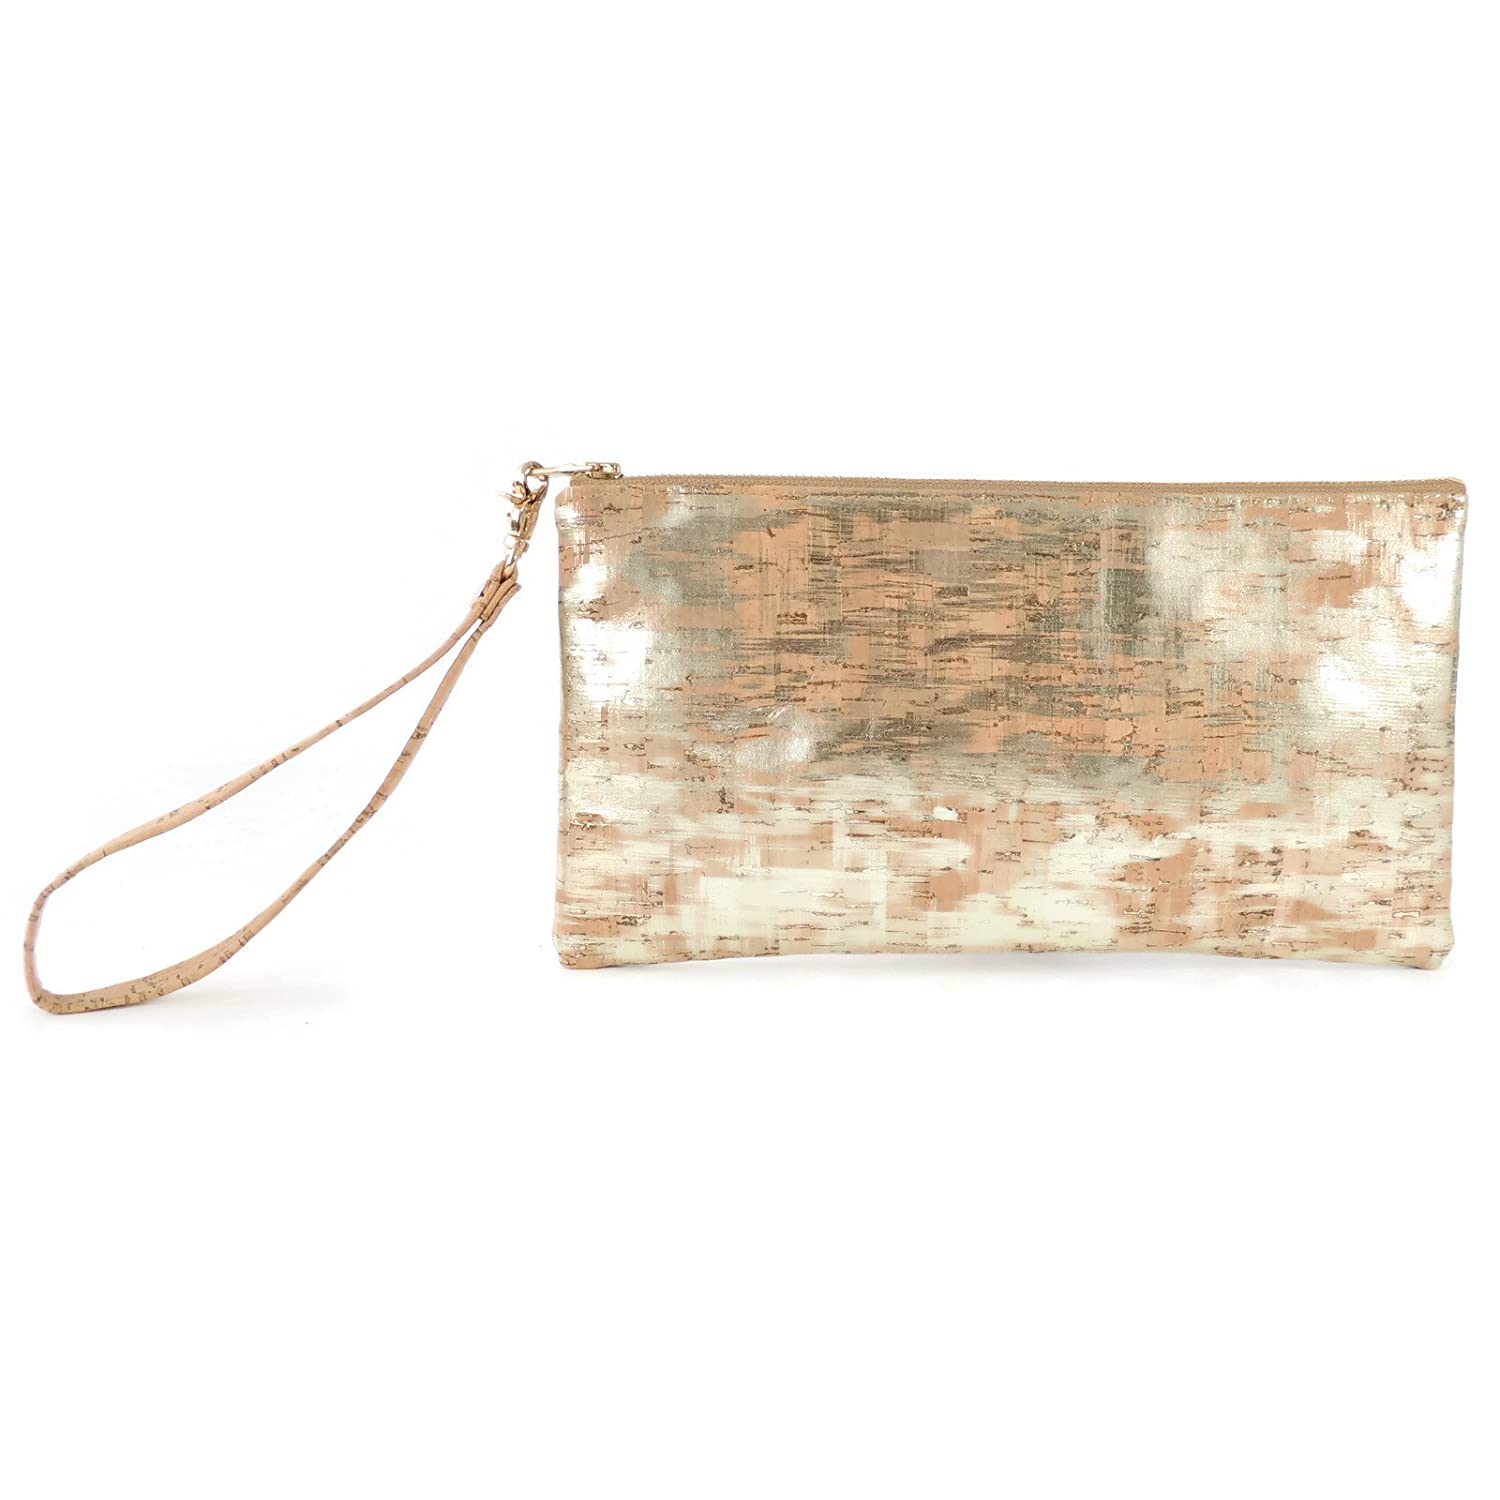 Wristlet Evening Clutch Bag in Brushed Gold Cork